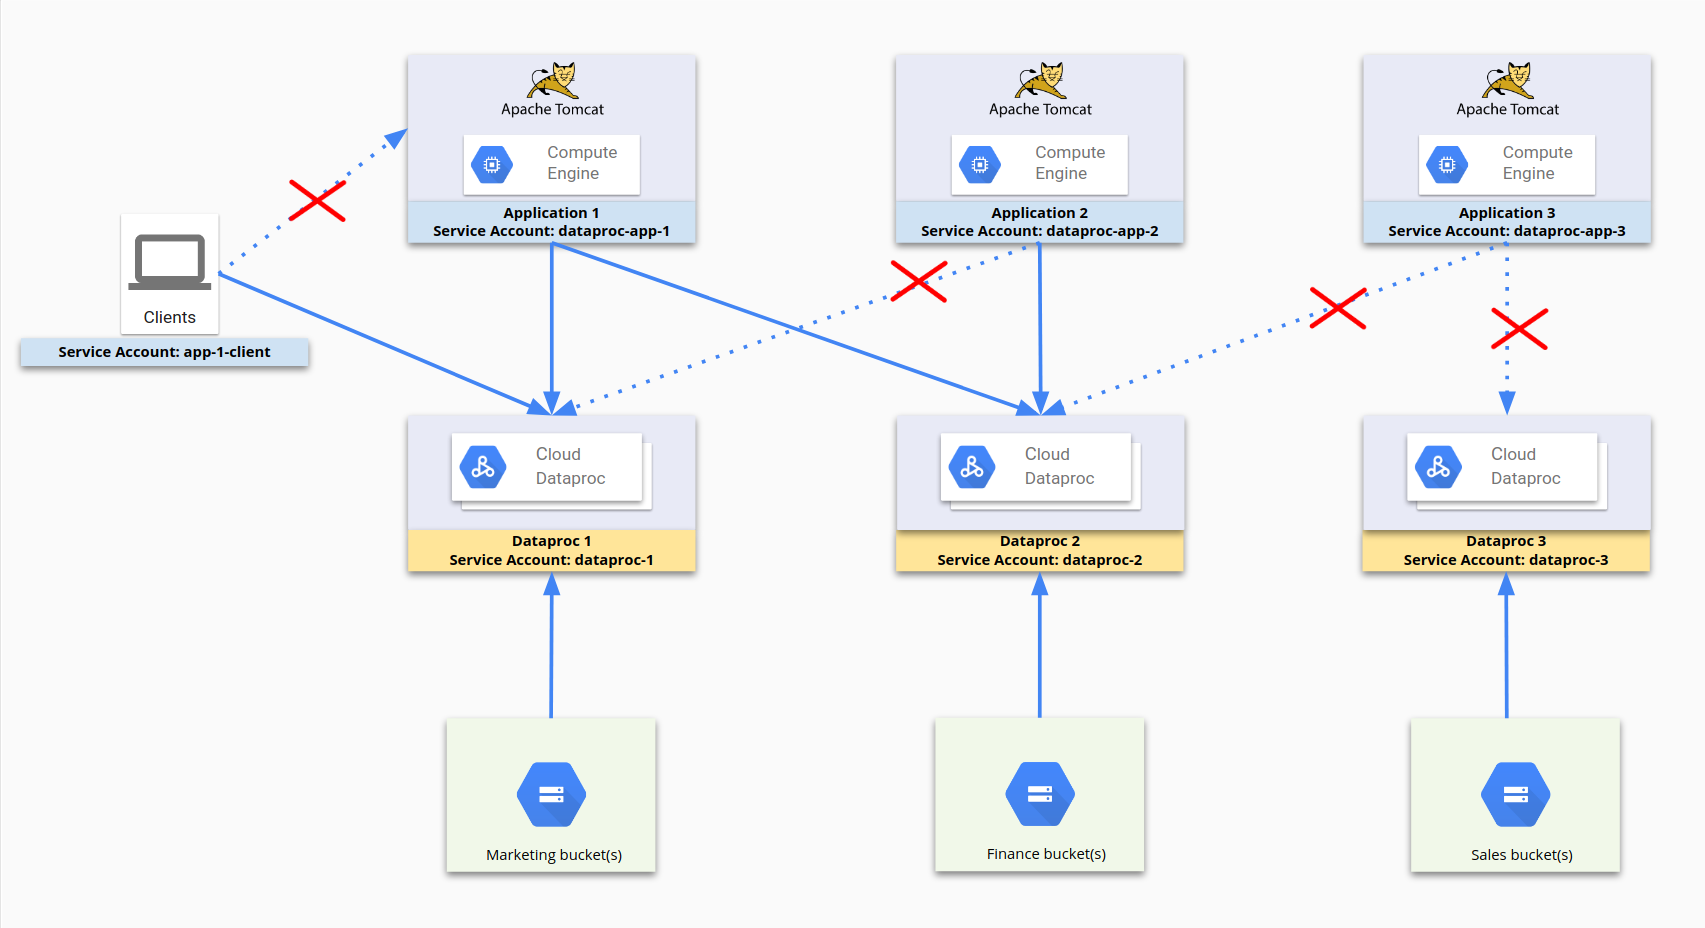 Using service accounts and firewall rules to restrict access to resources